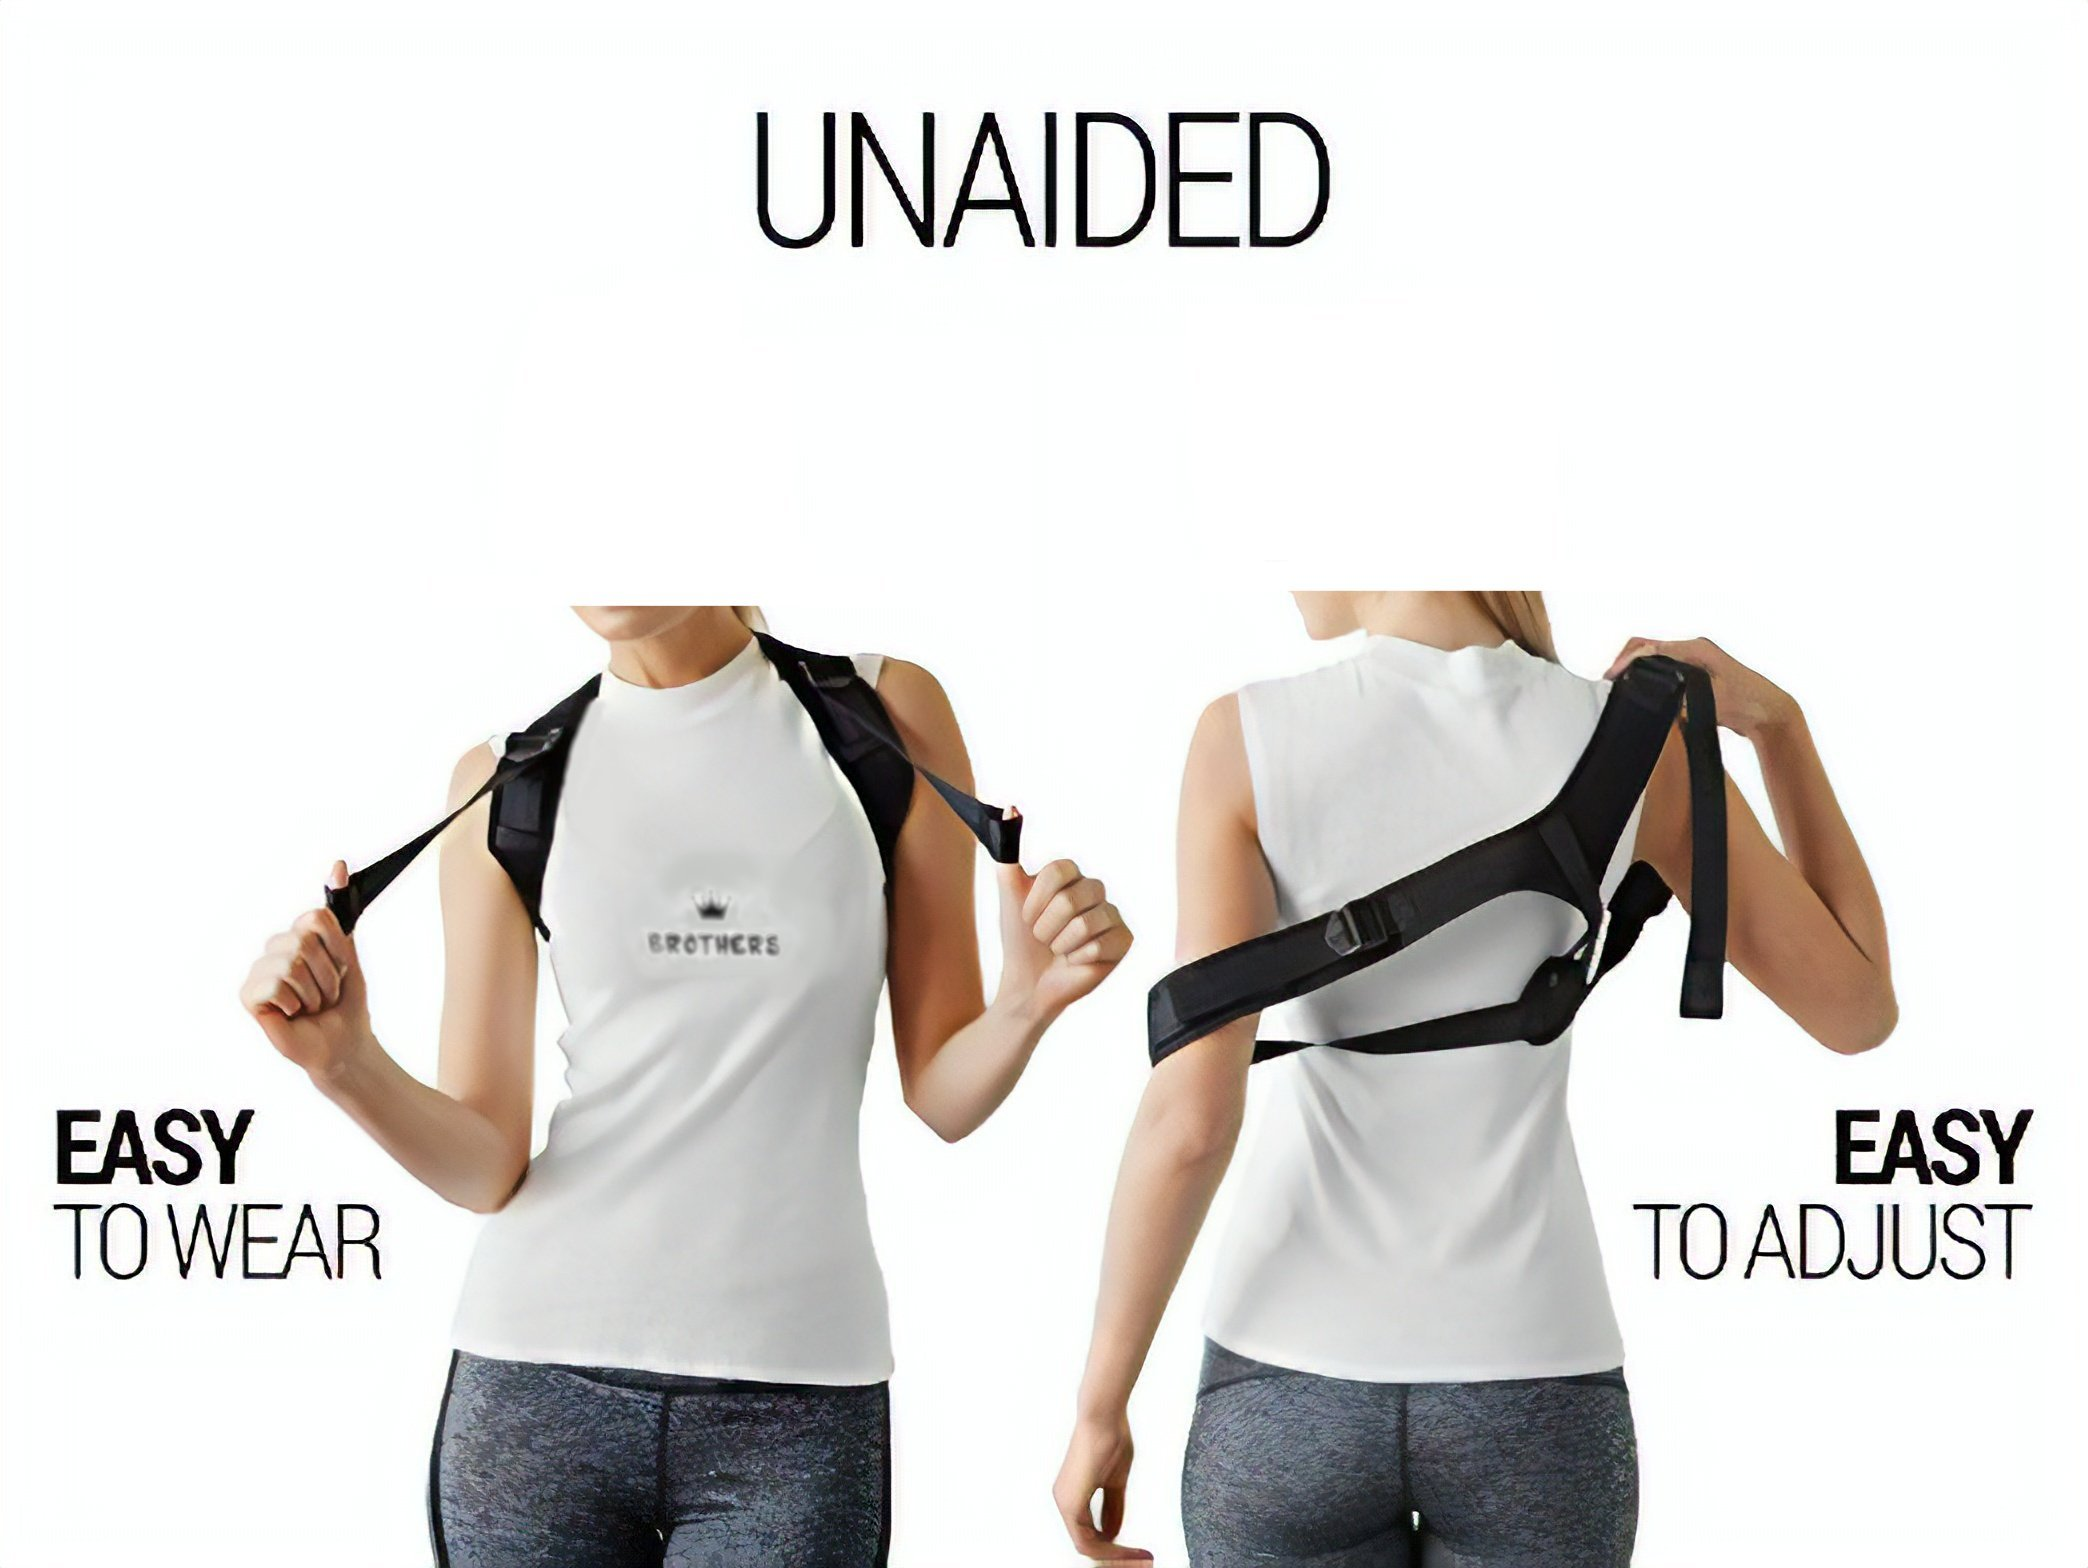 Posture Corrector for Women & Men, Orthopedic Back Support,Fully Adjustable, Breathable and Comfortable Support Brace,Upper Back & Neck Pain Relief by Brothers (Image #3)